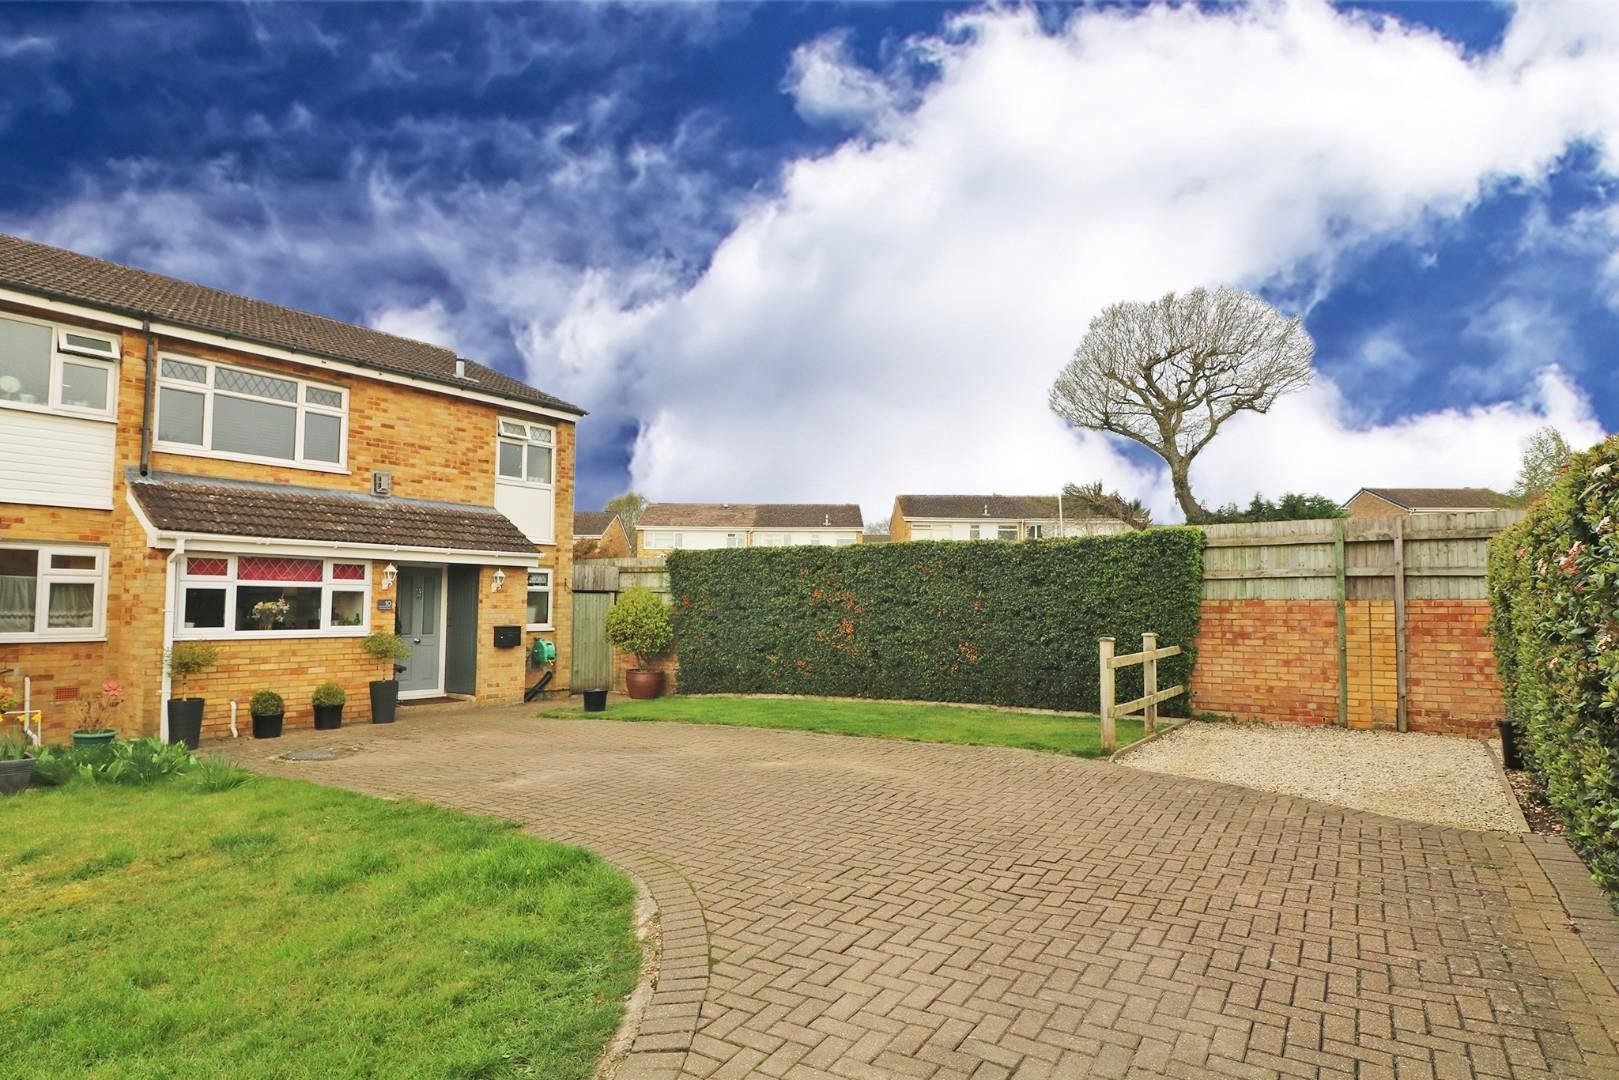 3 bed semi-detached to rent in Caversham 3